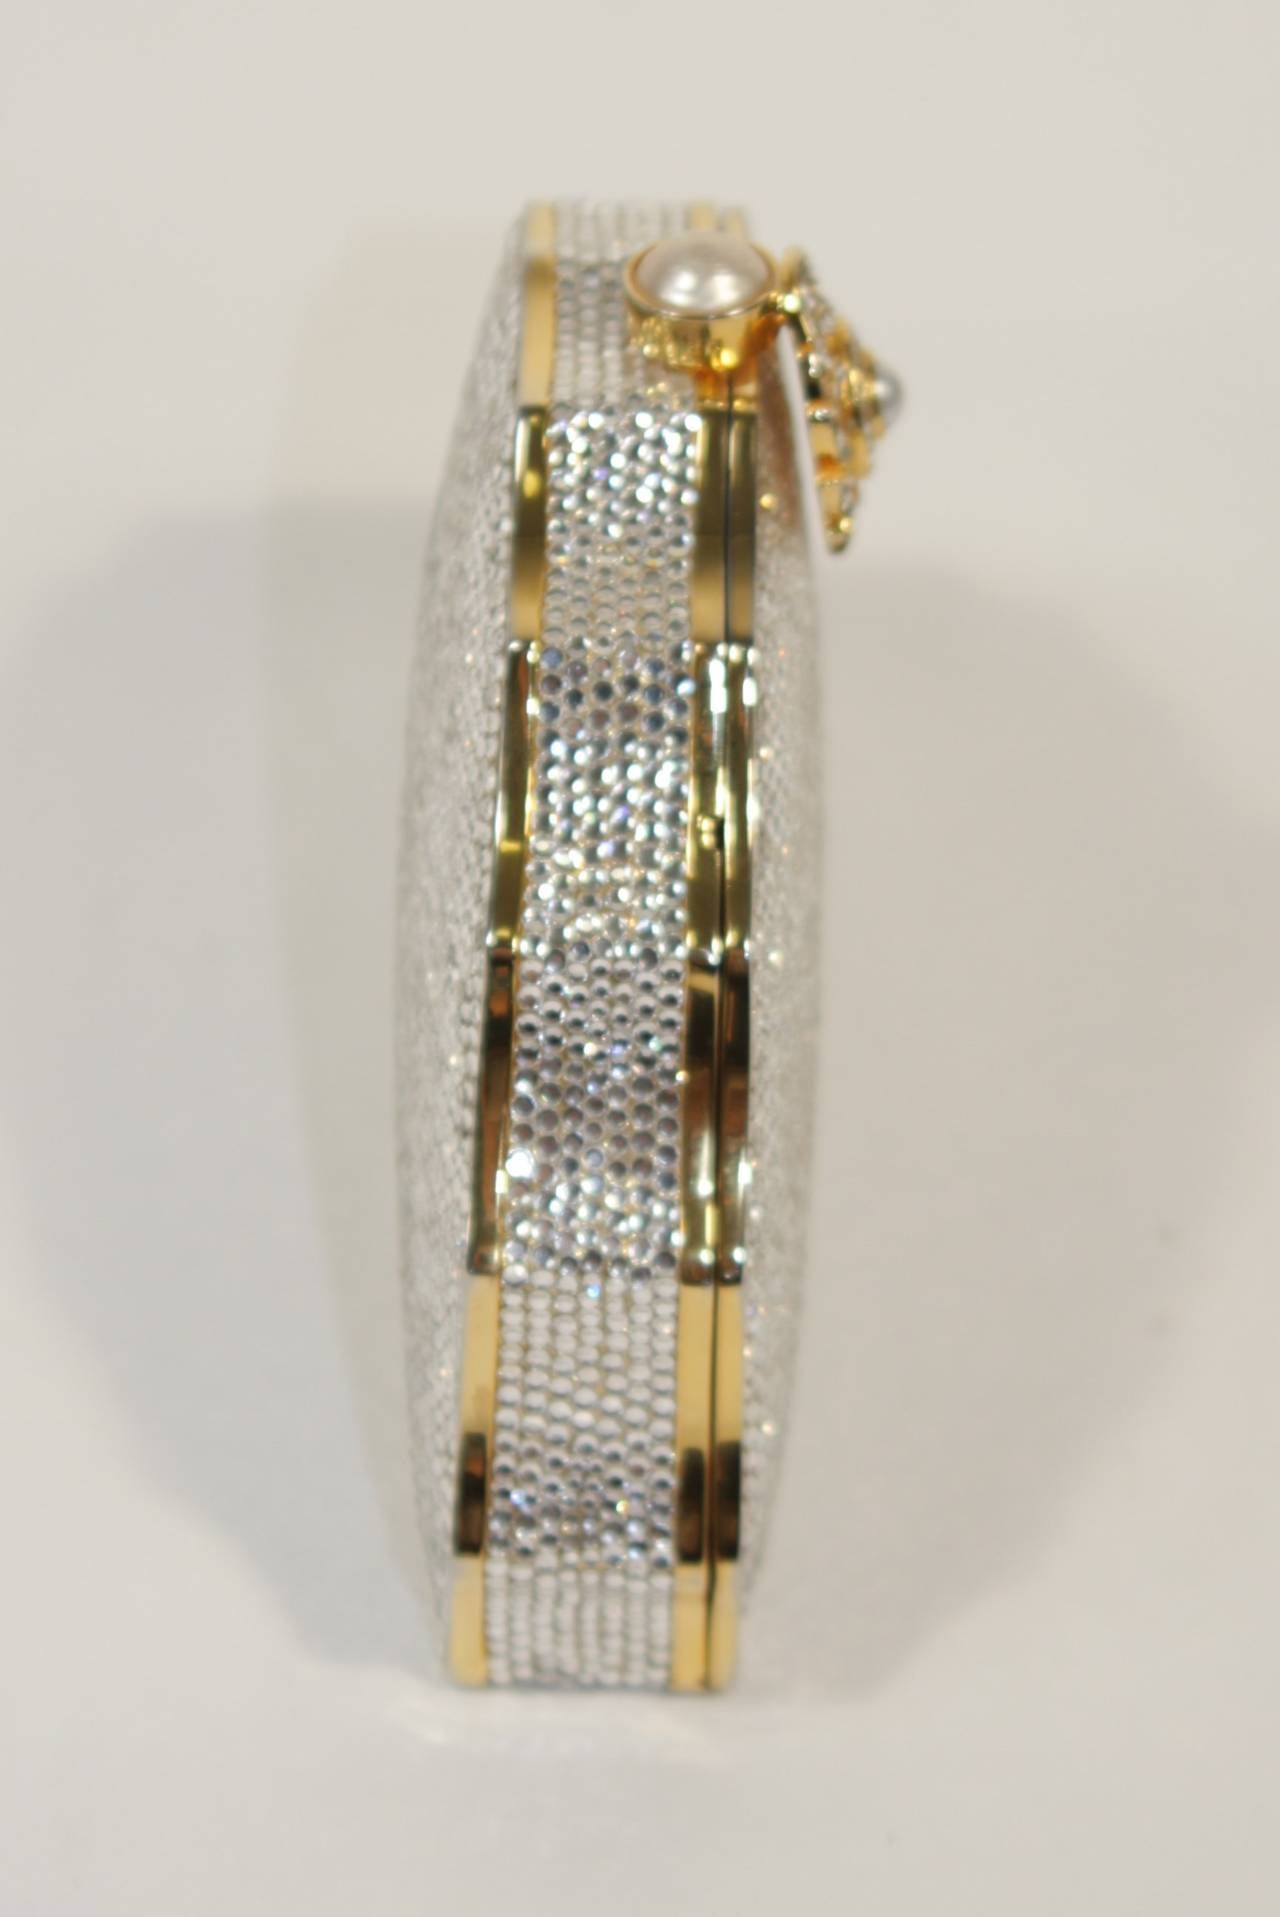 JUDITH LEIBER Classic Pave Rhinestone Minaudiare  with Chain Strap & Gold Detail 7